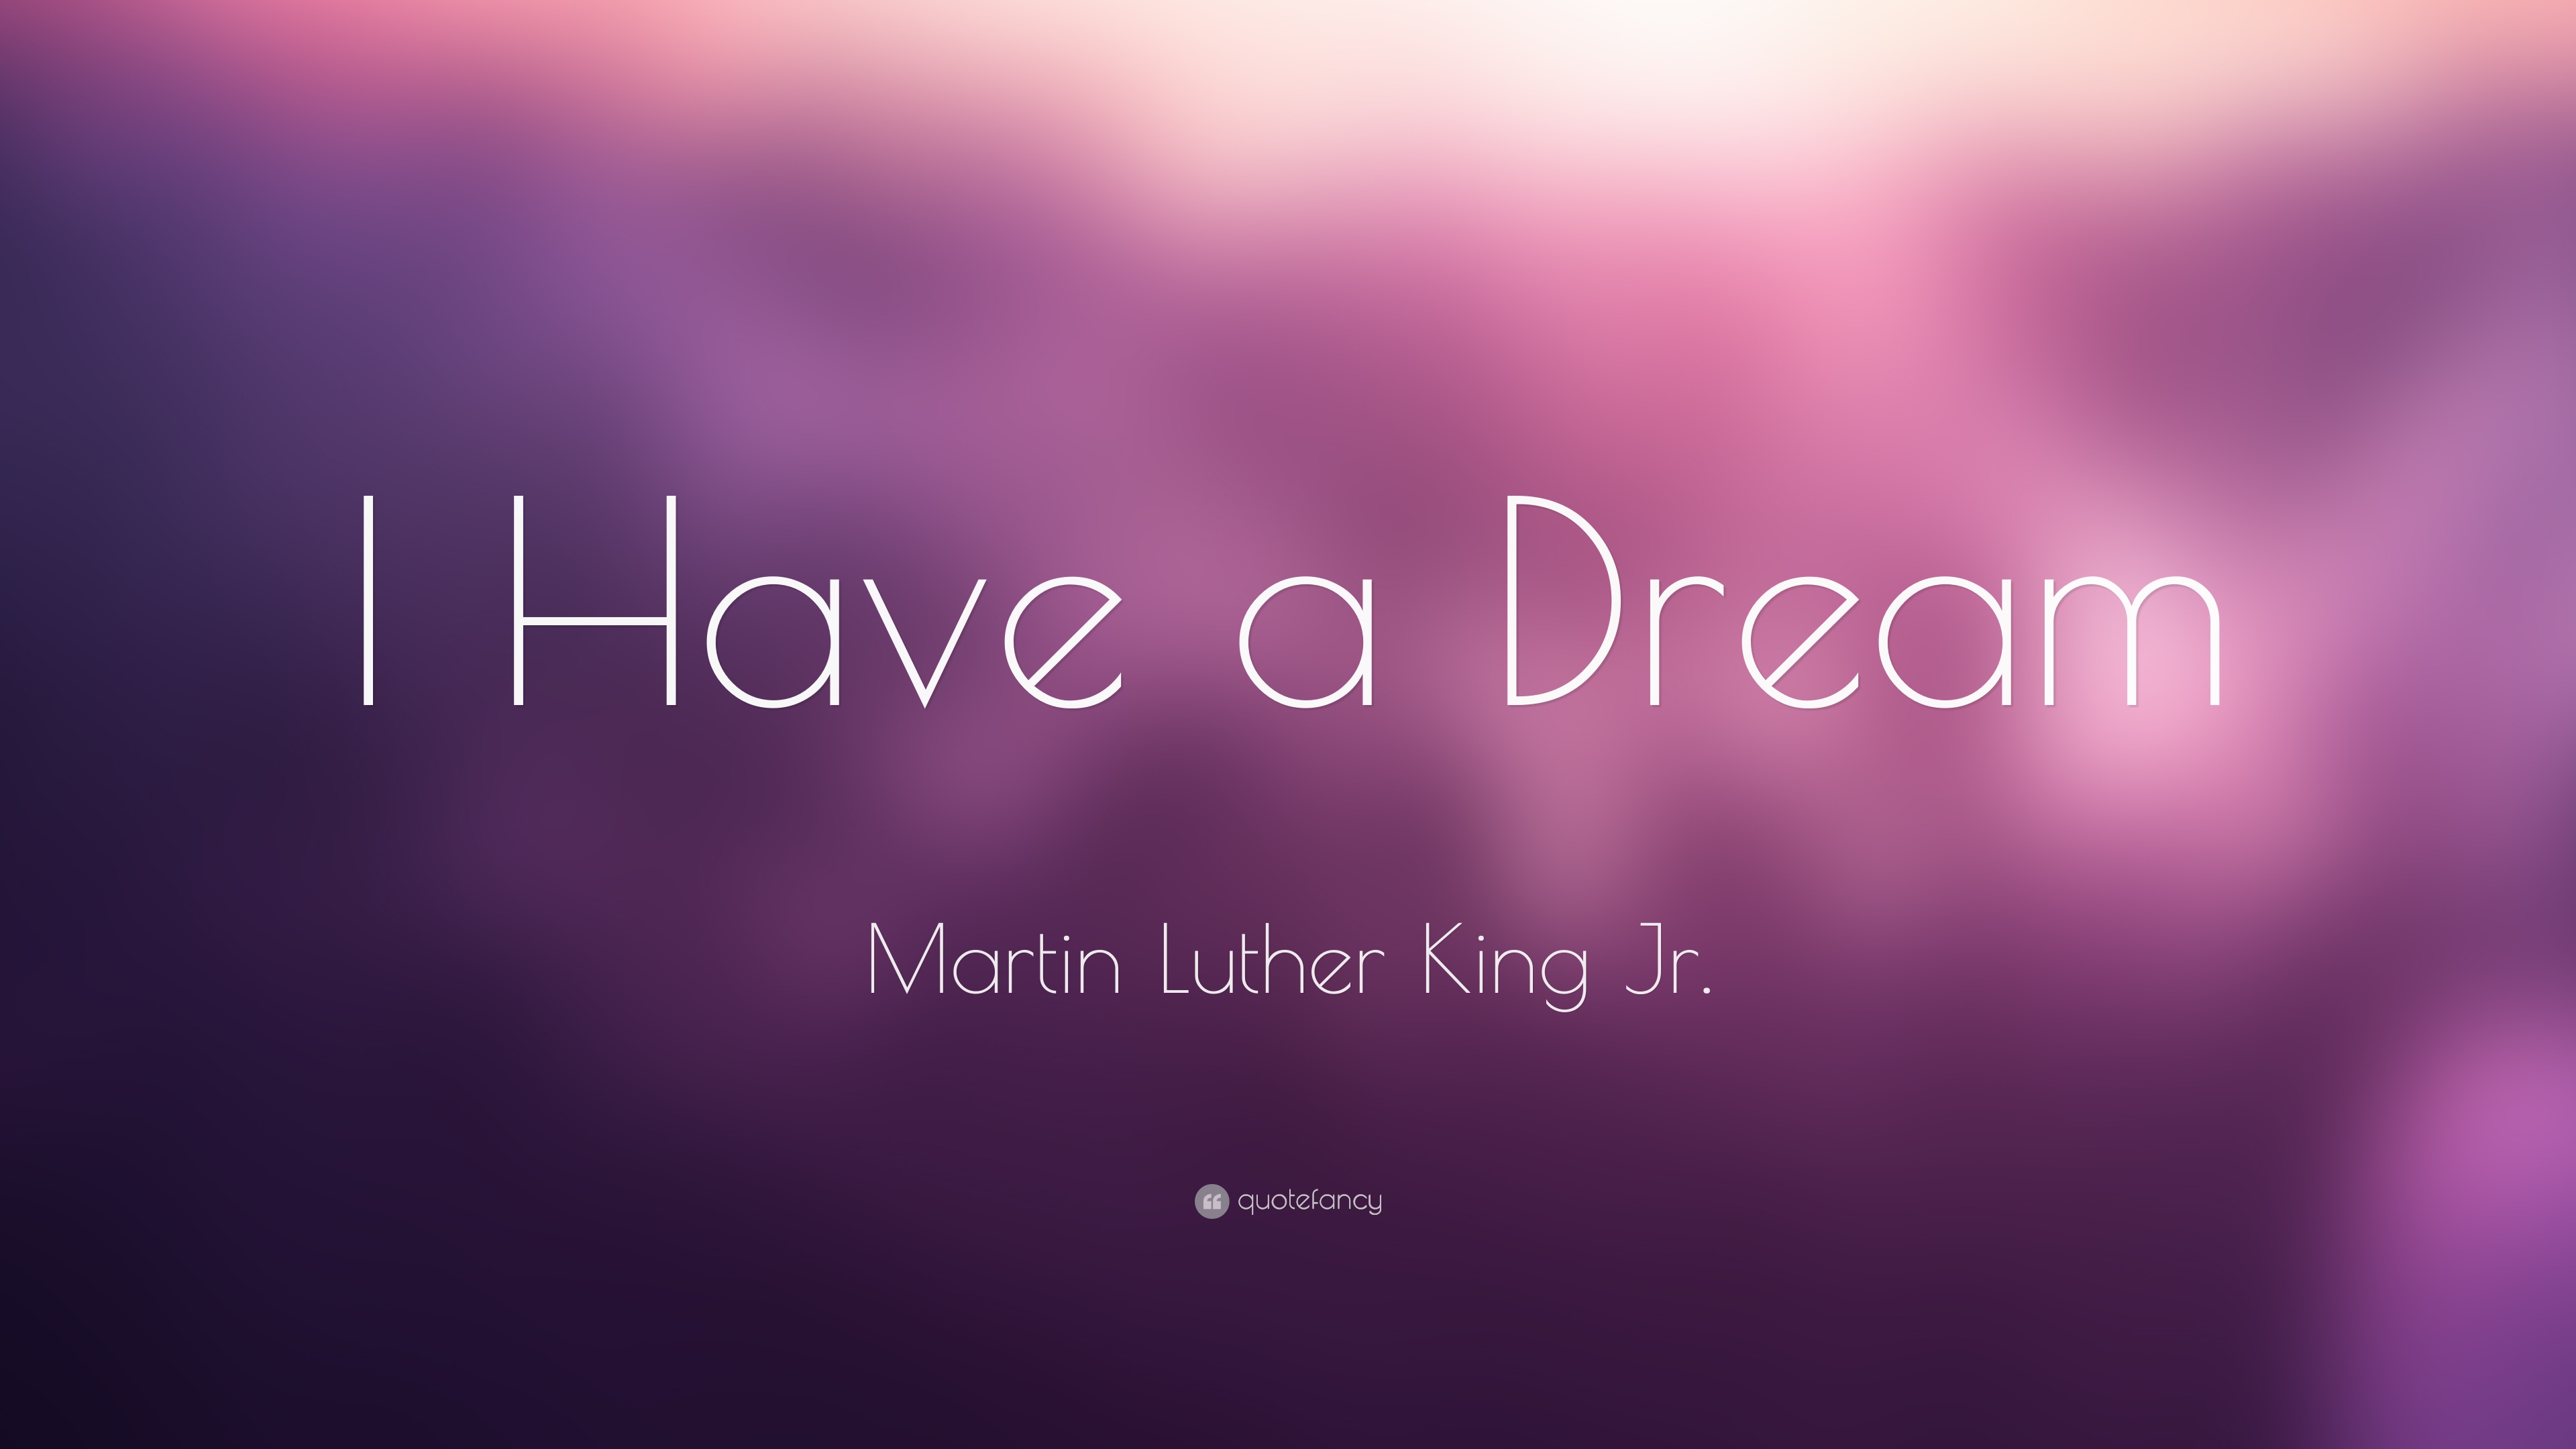 Taylor Swift Song Quotes Wallpaper Martin Luther King Jr Quote I Have A Dream 19